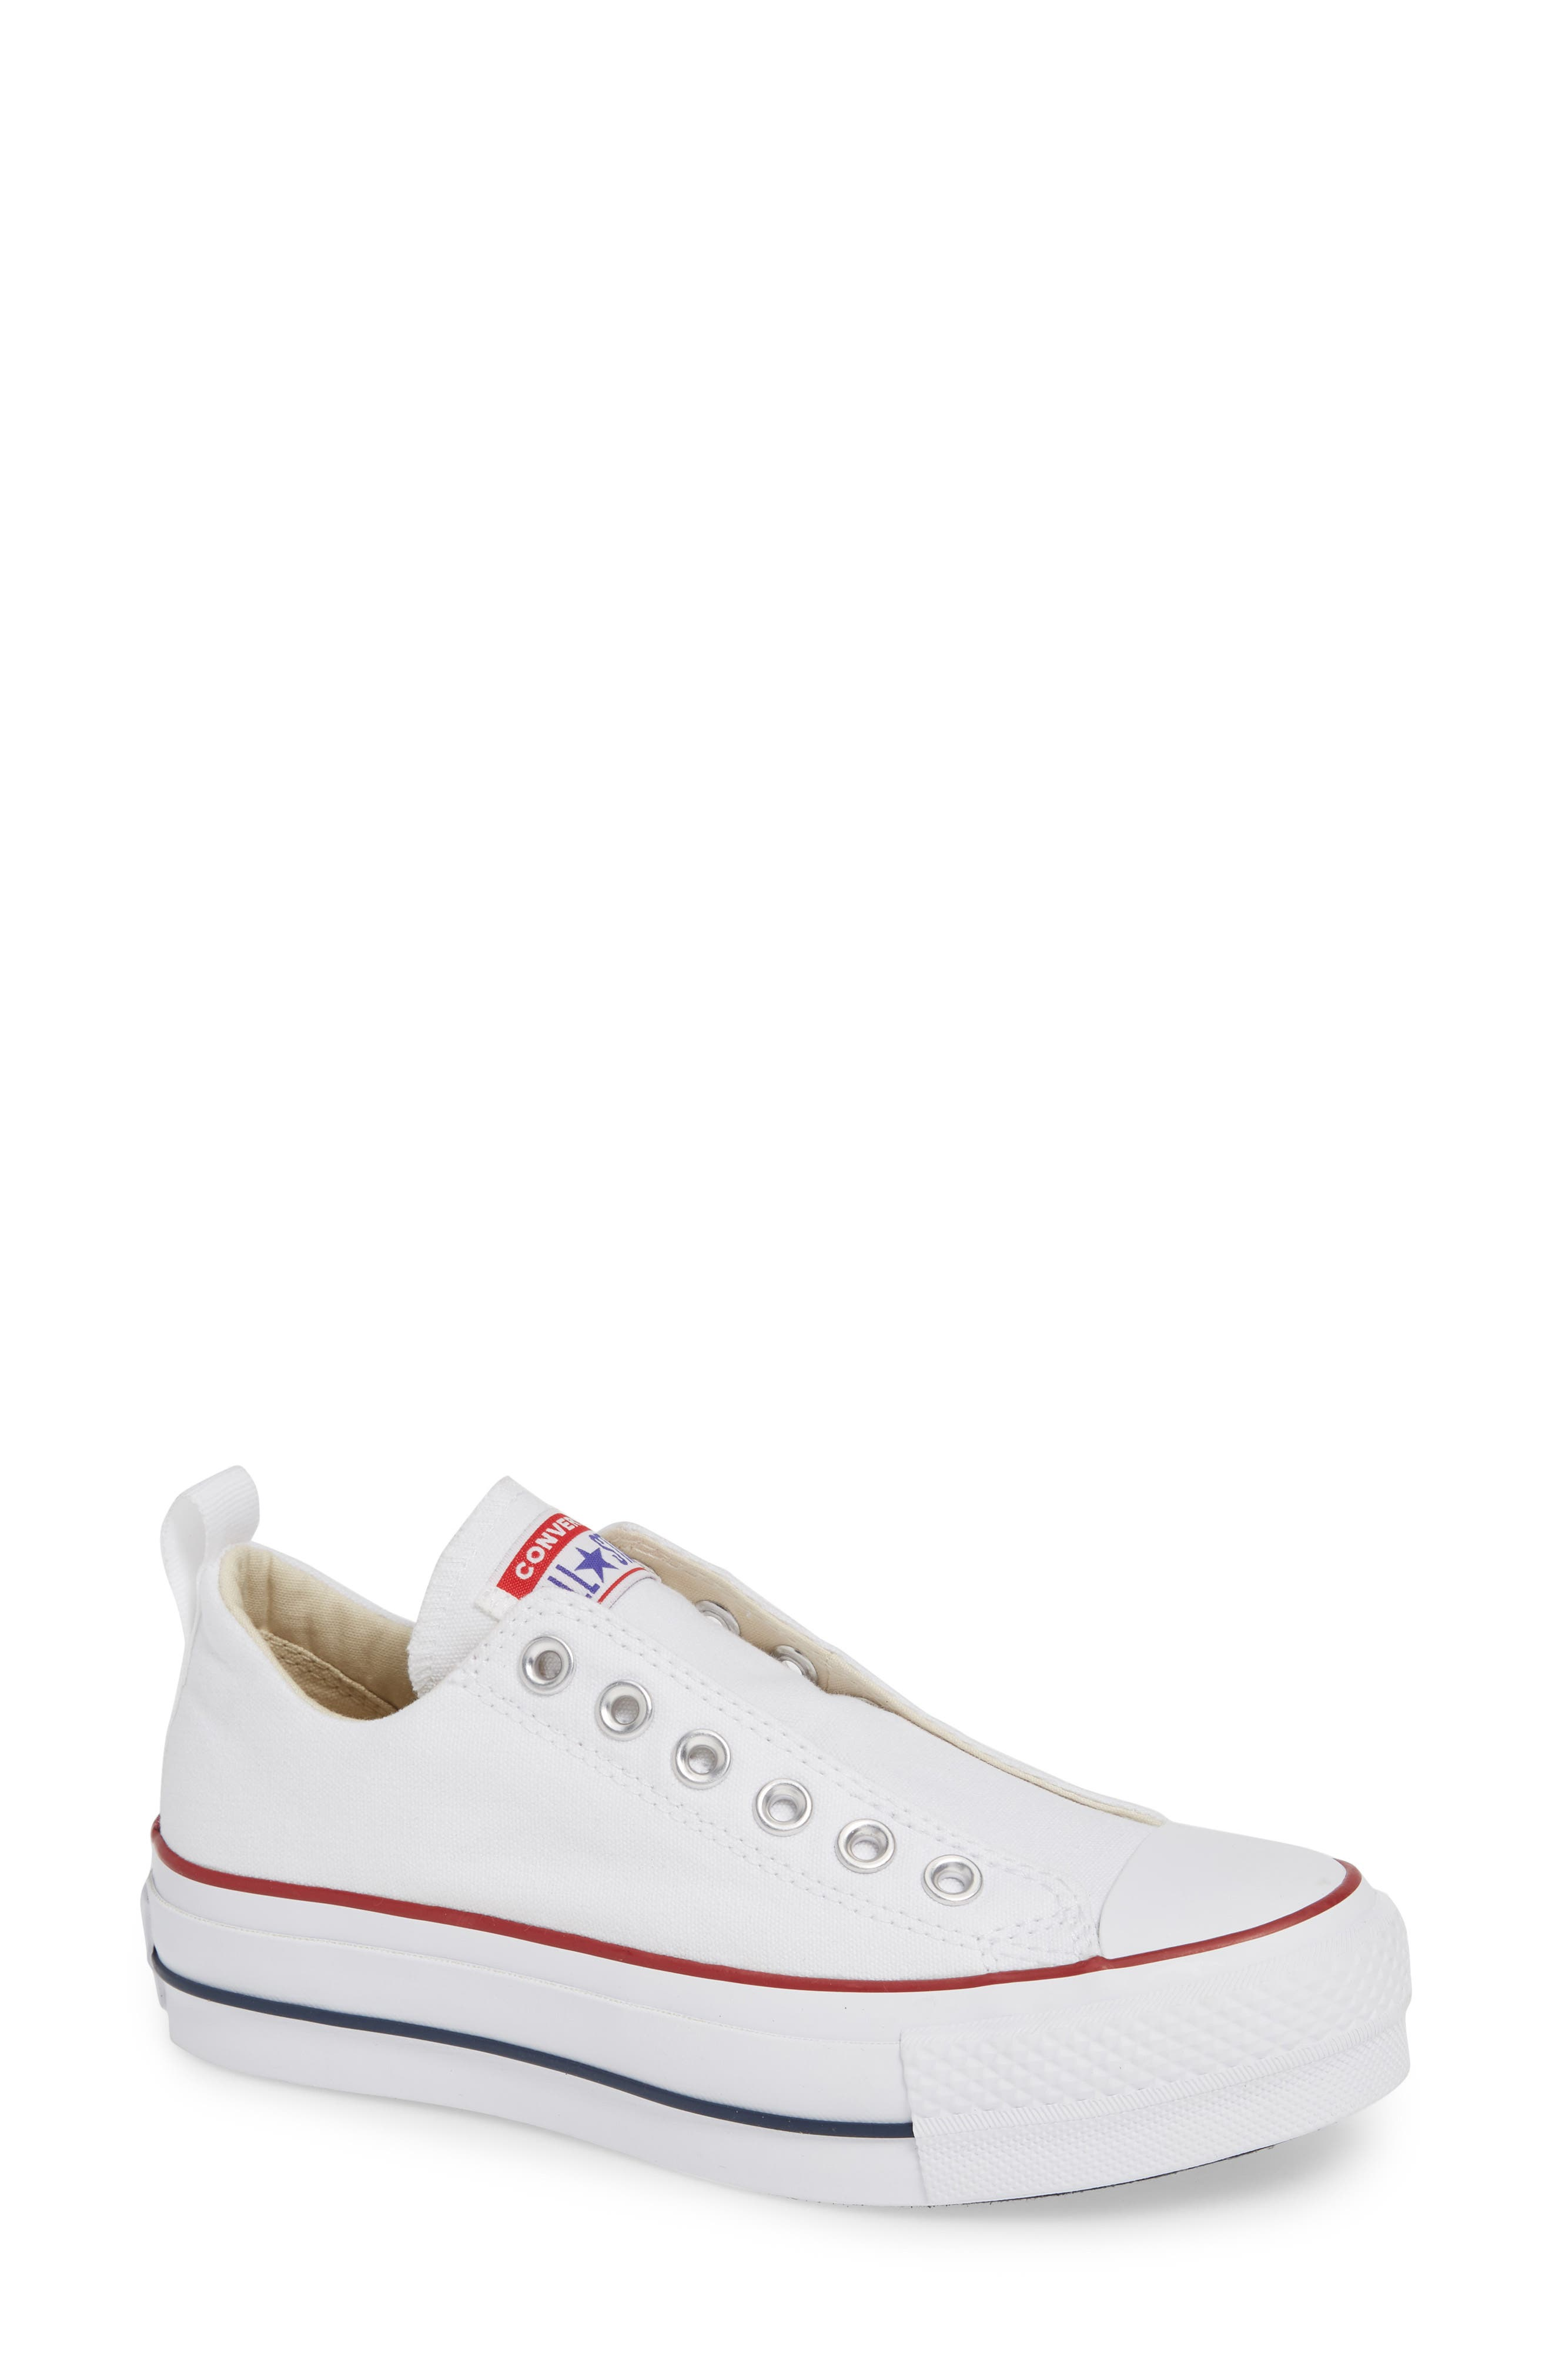 CONVERSE Chuck Taylor<sup>®</sup> All Star<sup>®</sup> Low Top Sneaker, Main, color, WHITE/ RED/ BLUE